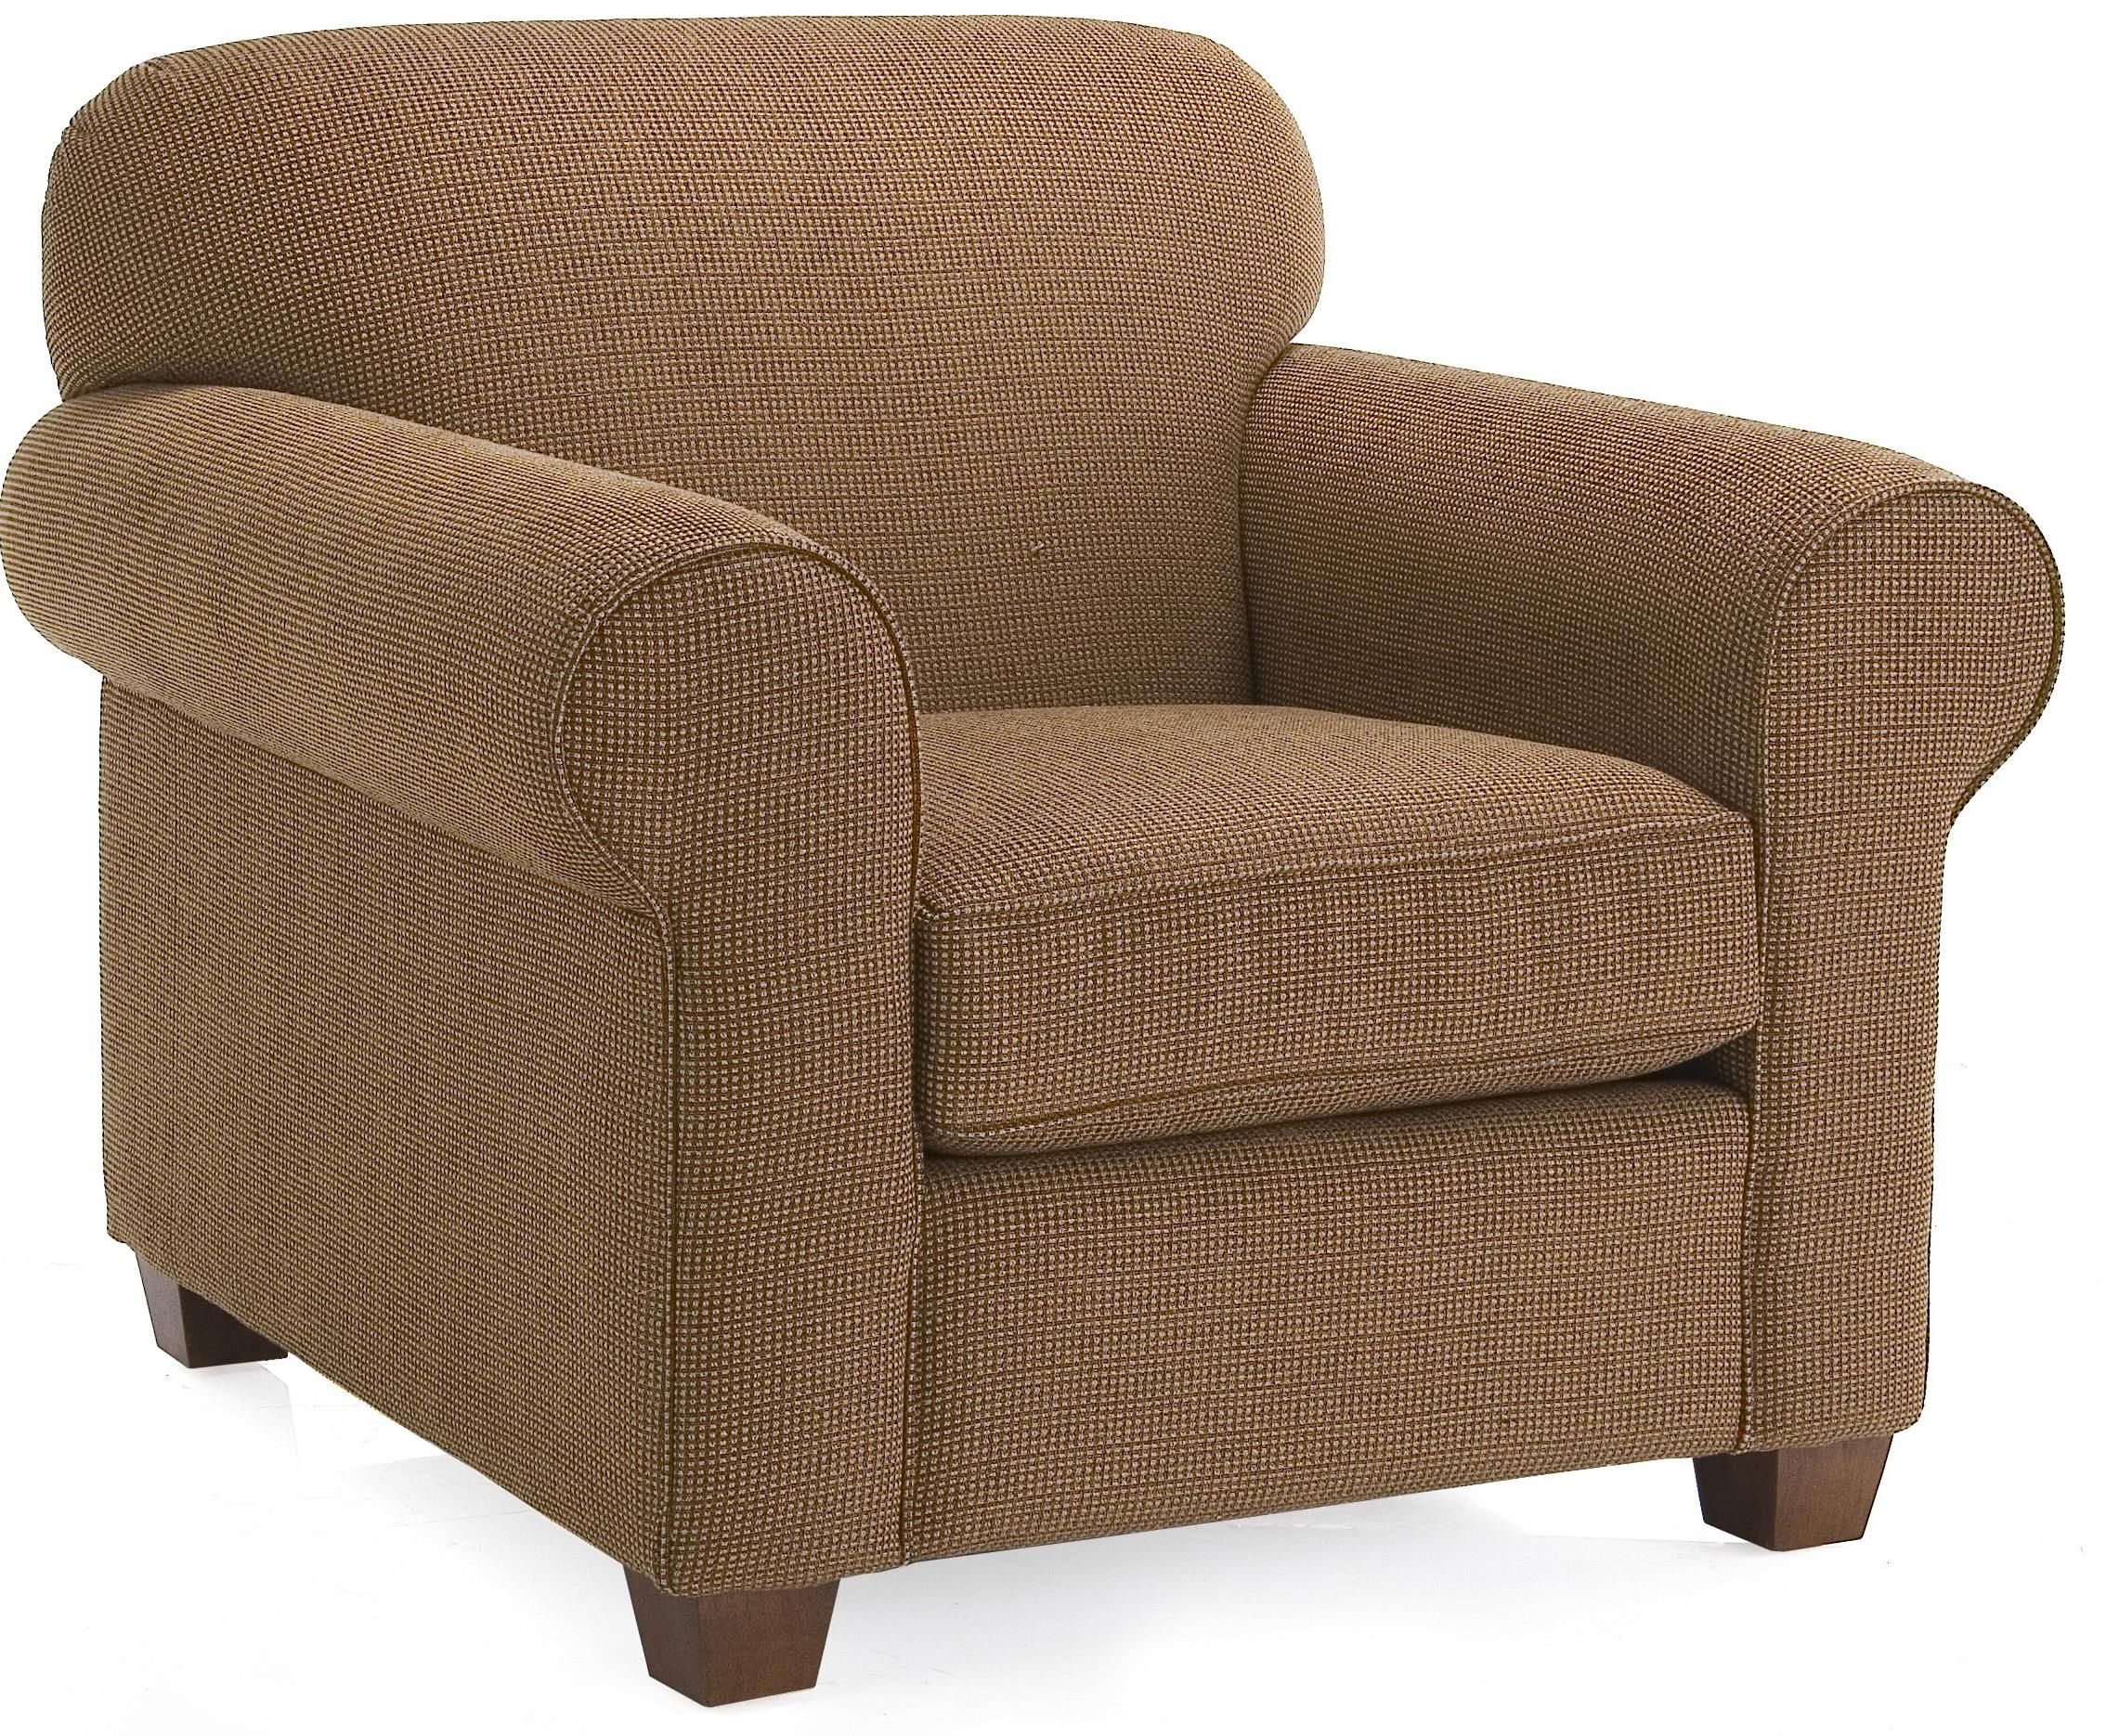 2455 Upholstered Chair by Decor-Rest at Johnny Janosik